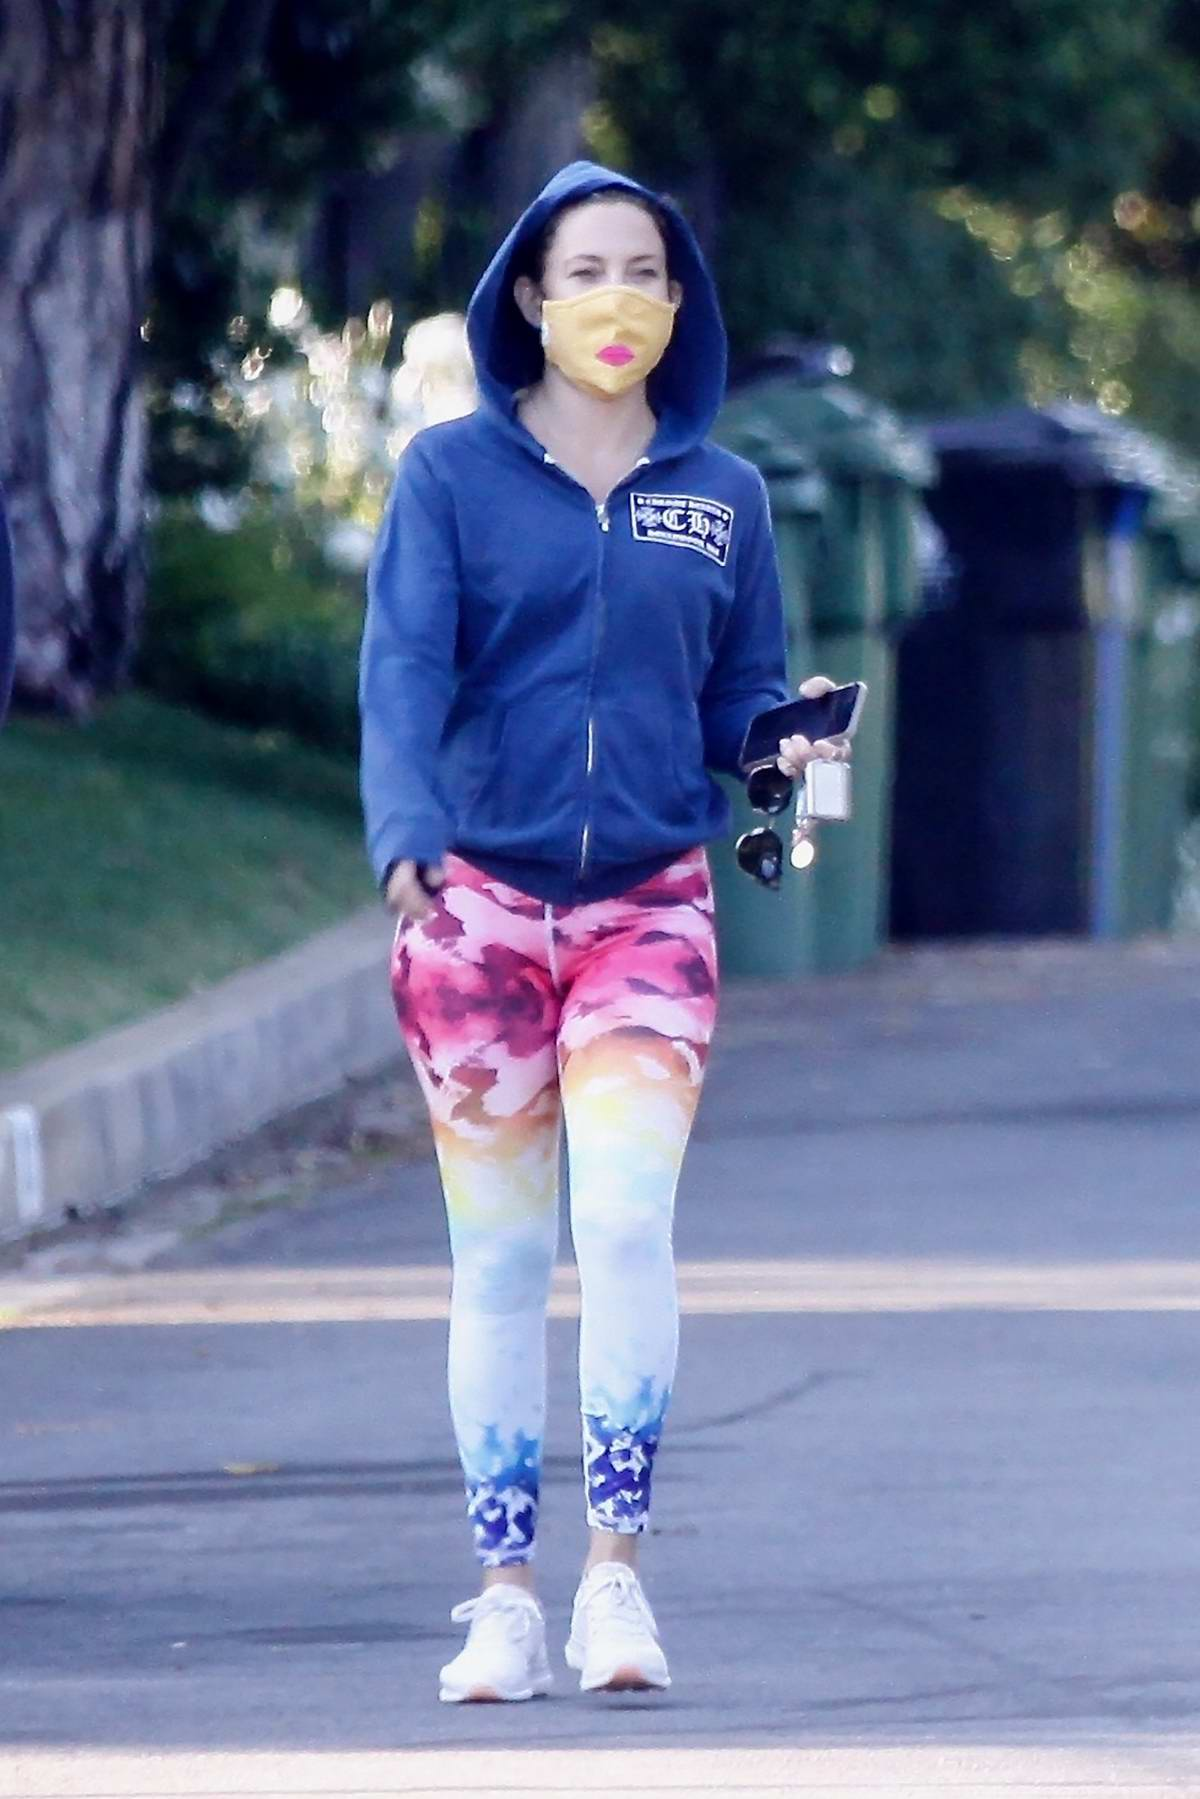 Kate Hudson rocks a pair of colorful leggings as she steps out for a walk with a friend in Brentwood, California